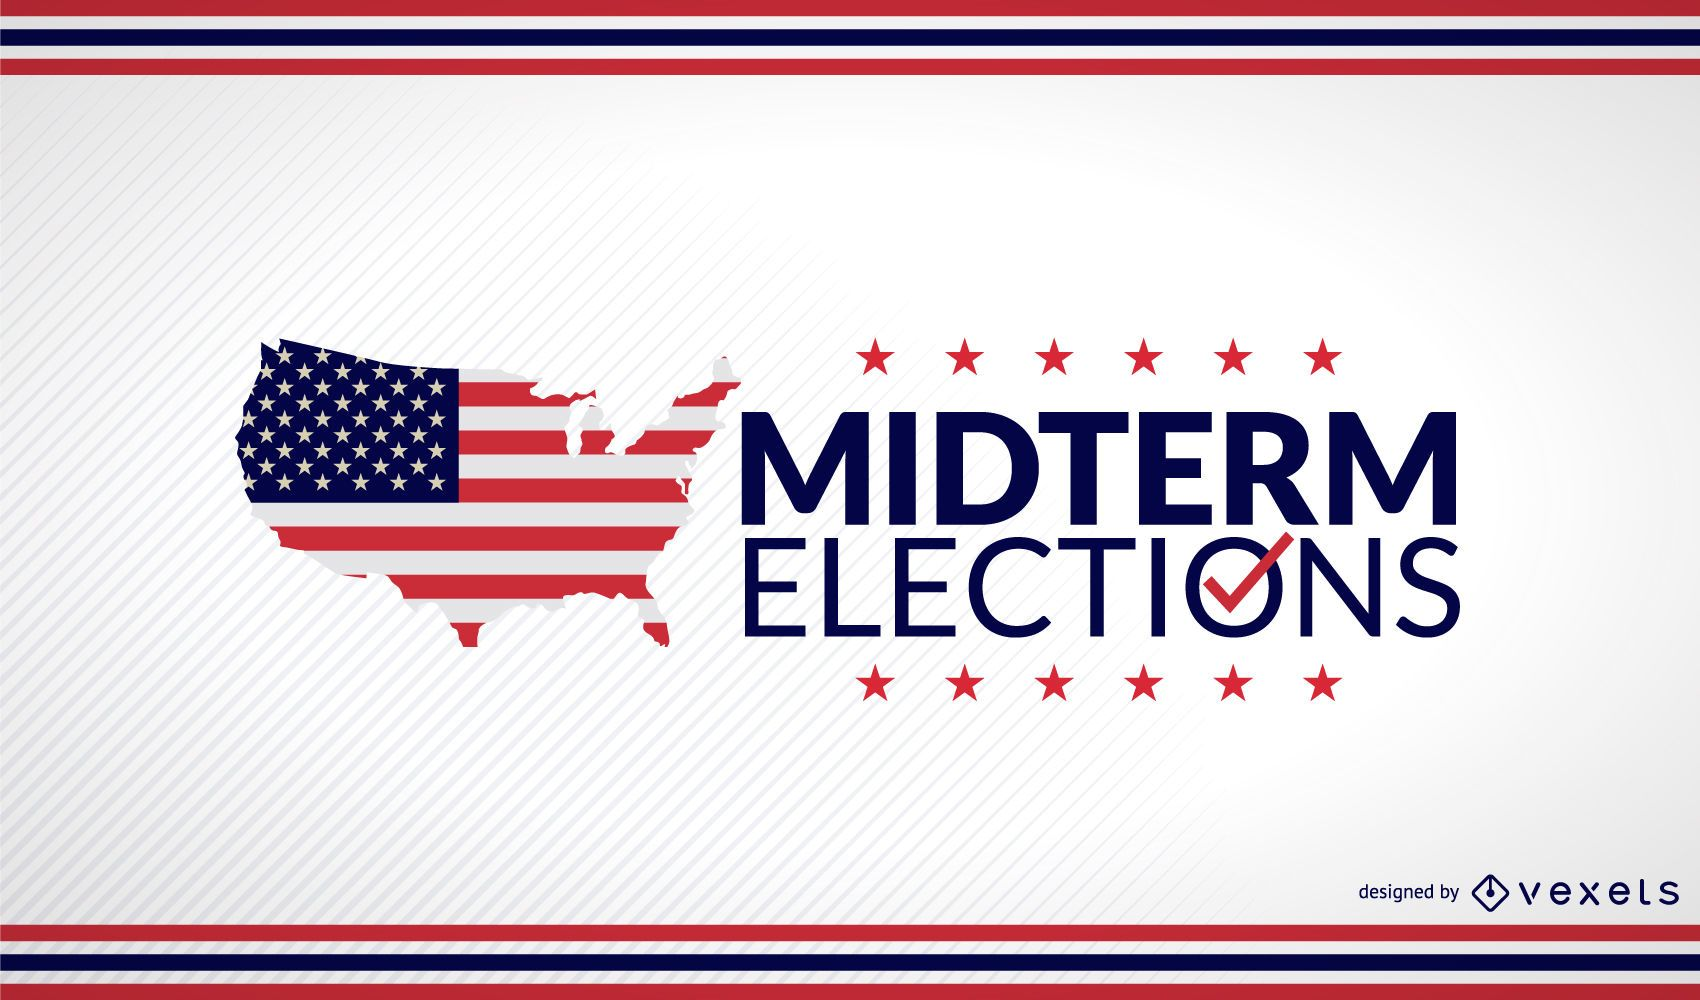 United States elections design